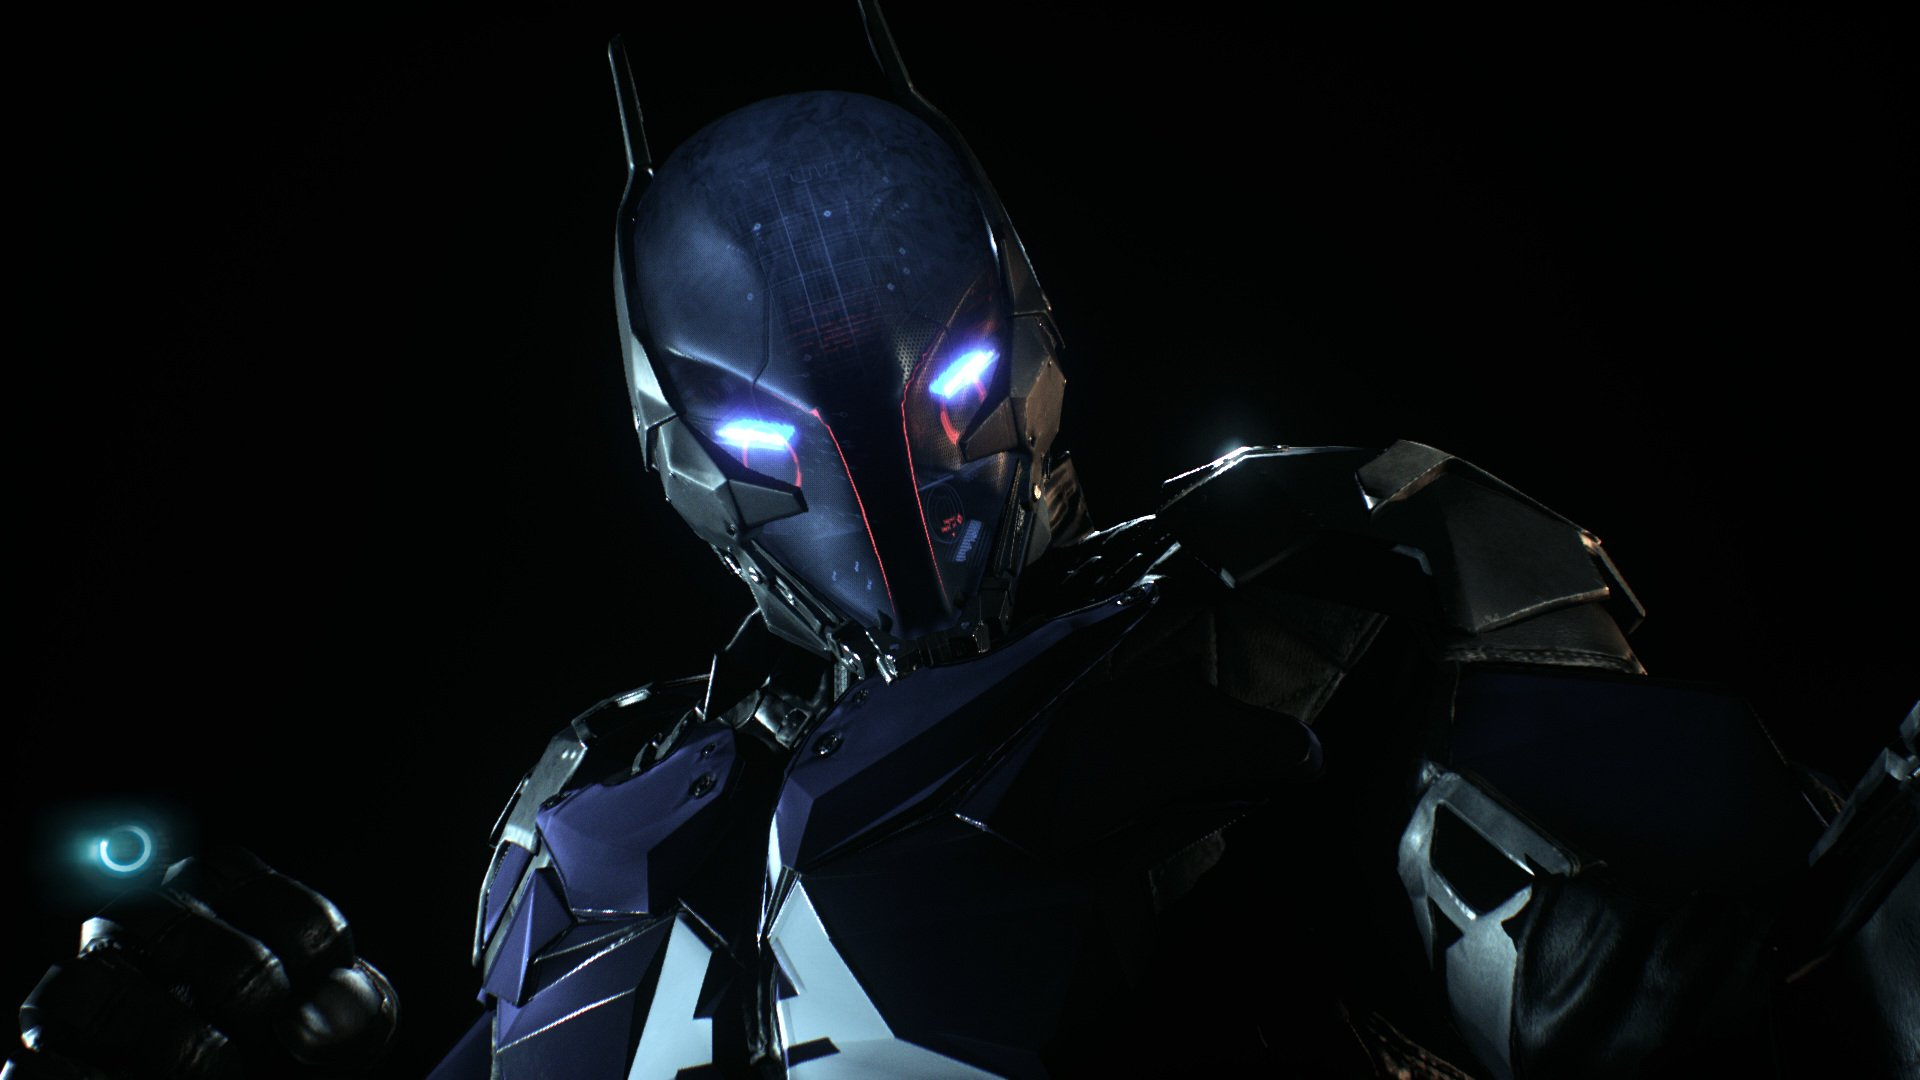 batman_arkham_knight-3129229.jpg